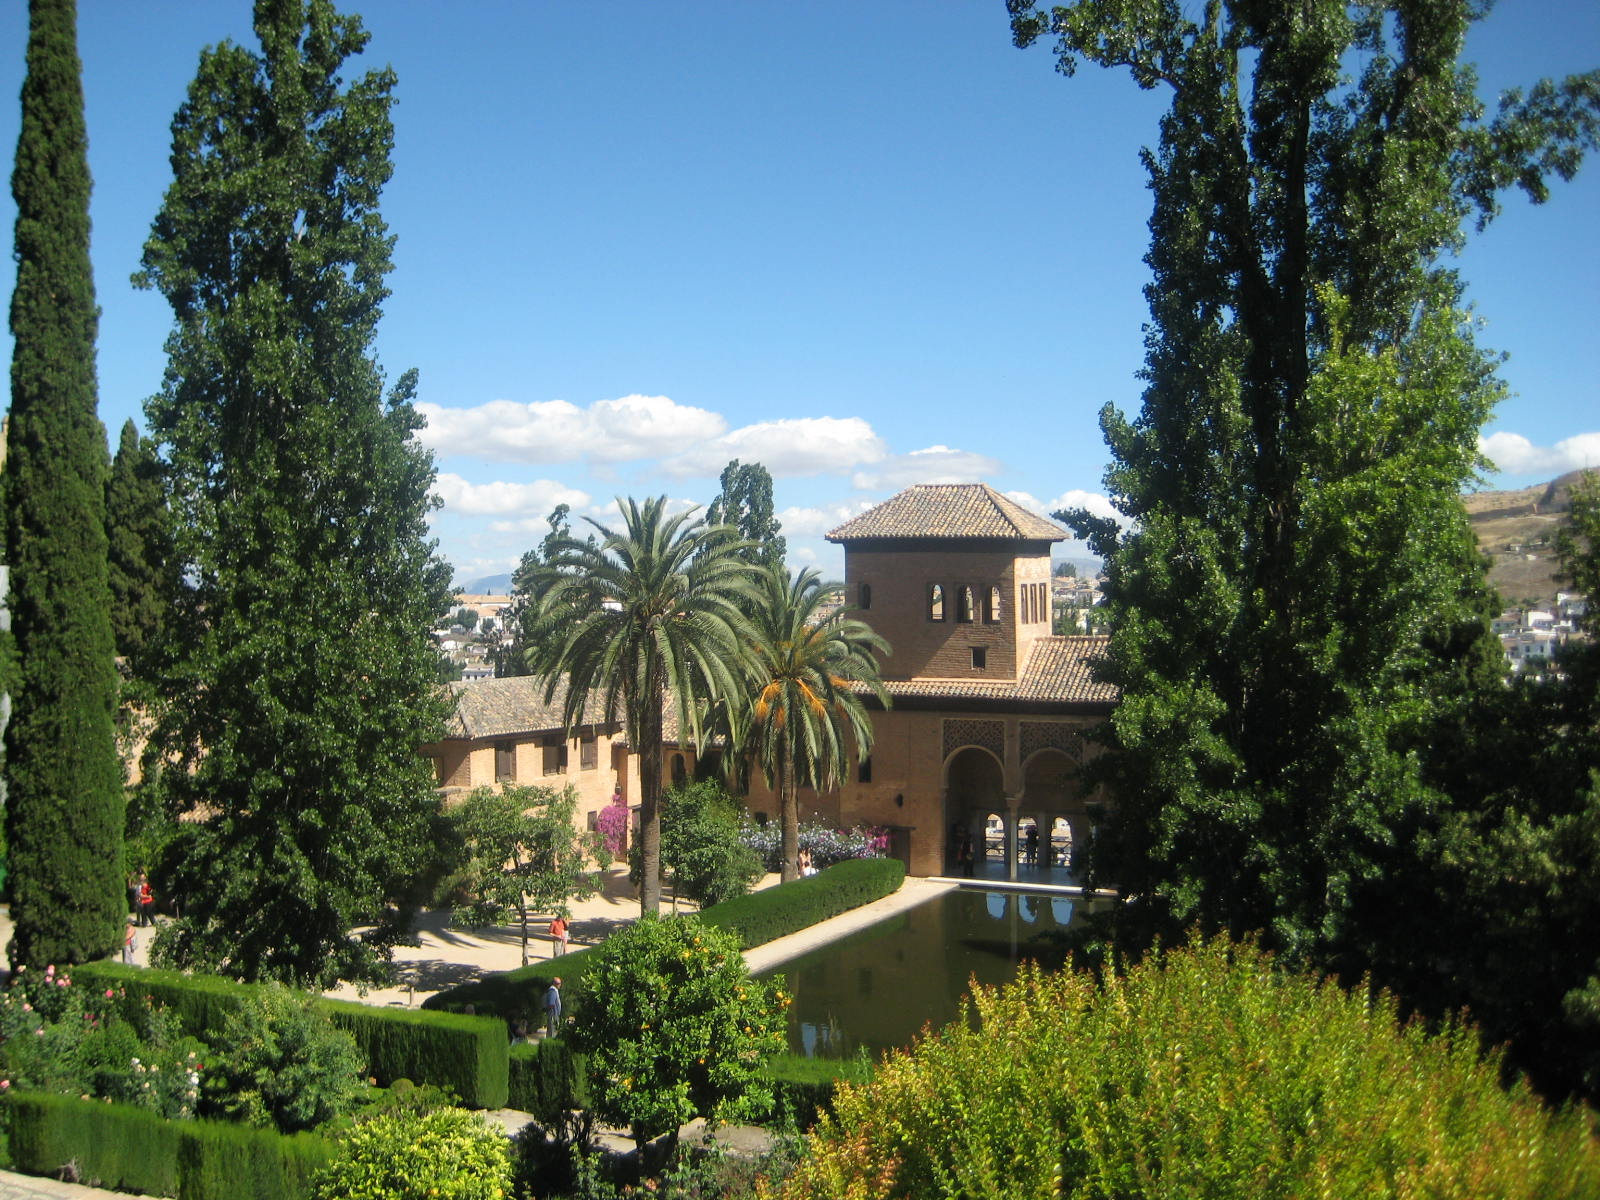 Granada, Spain, Alhambra inside garden view